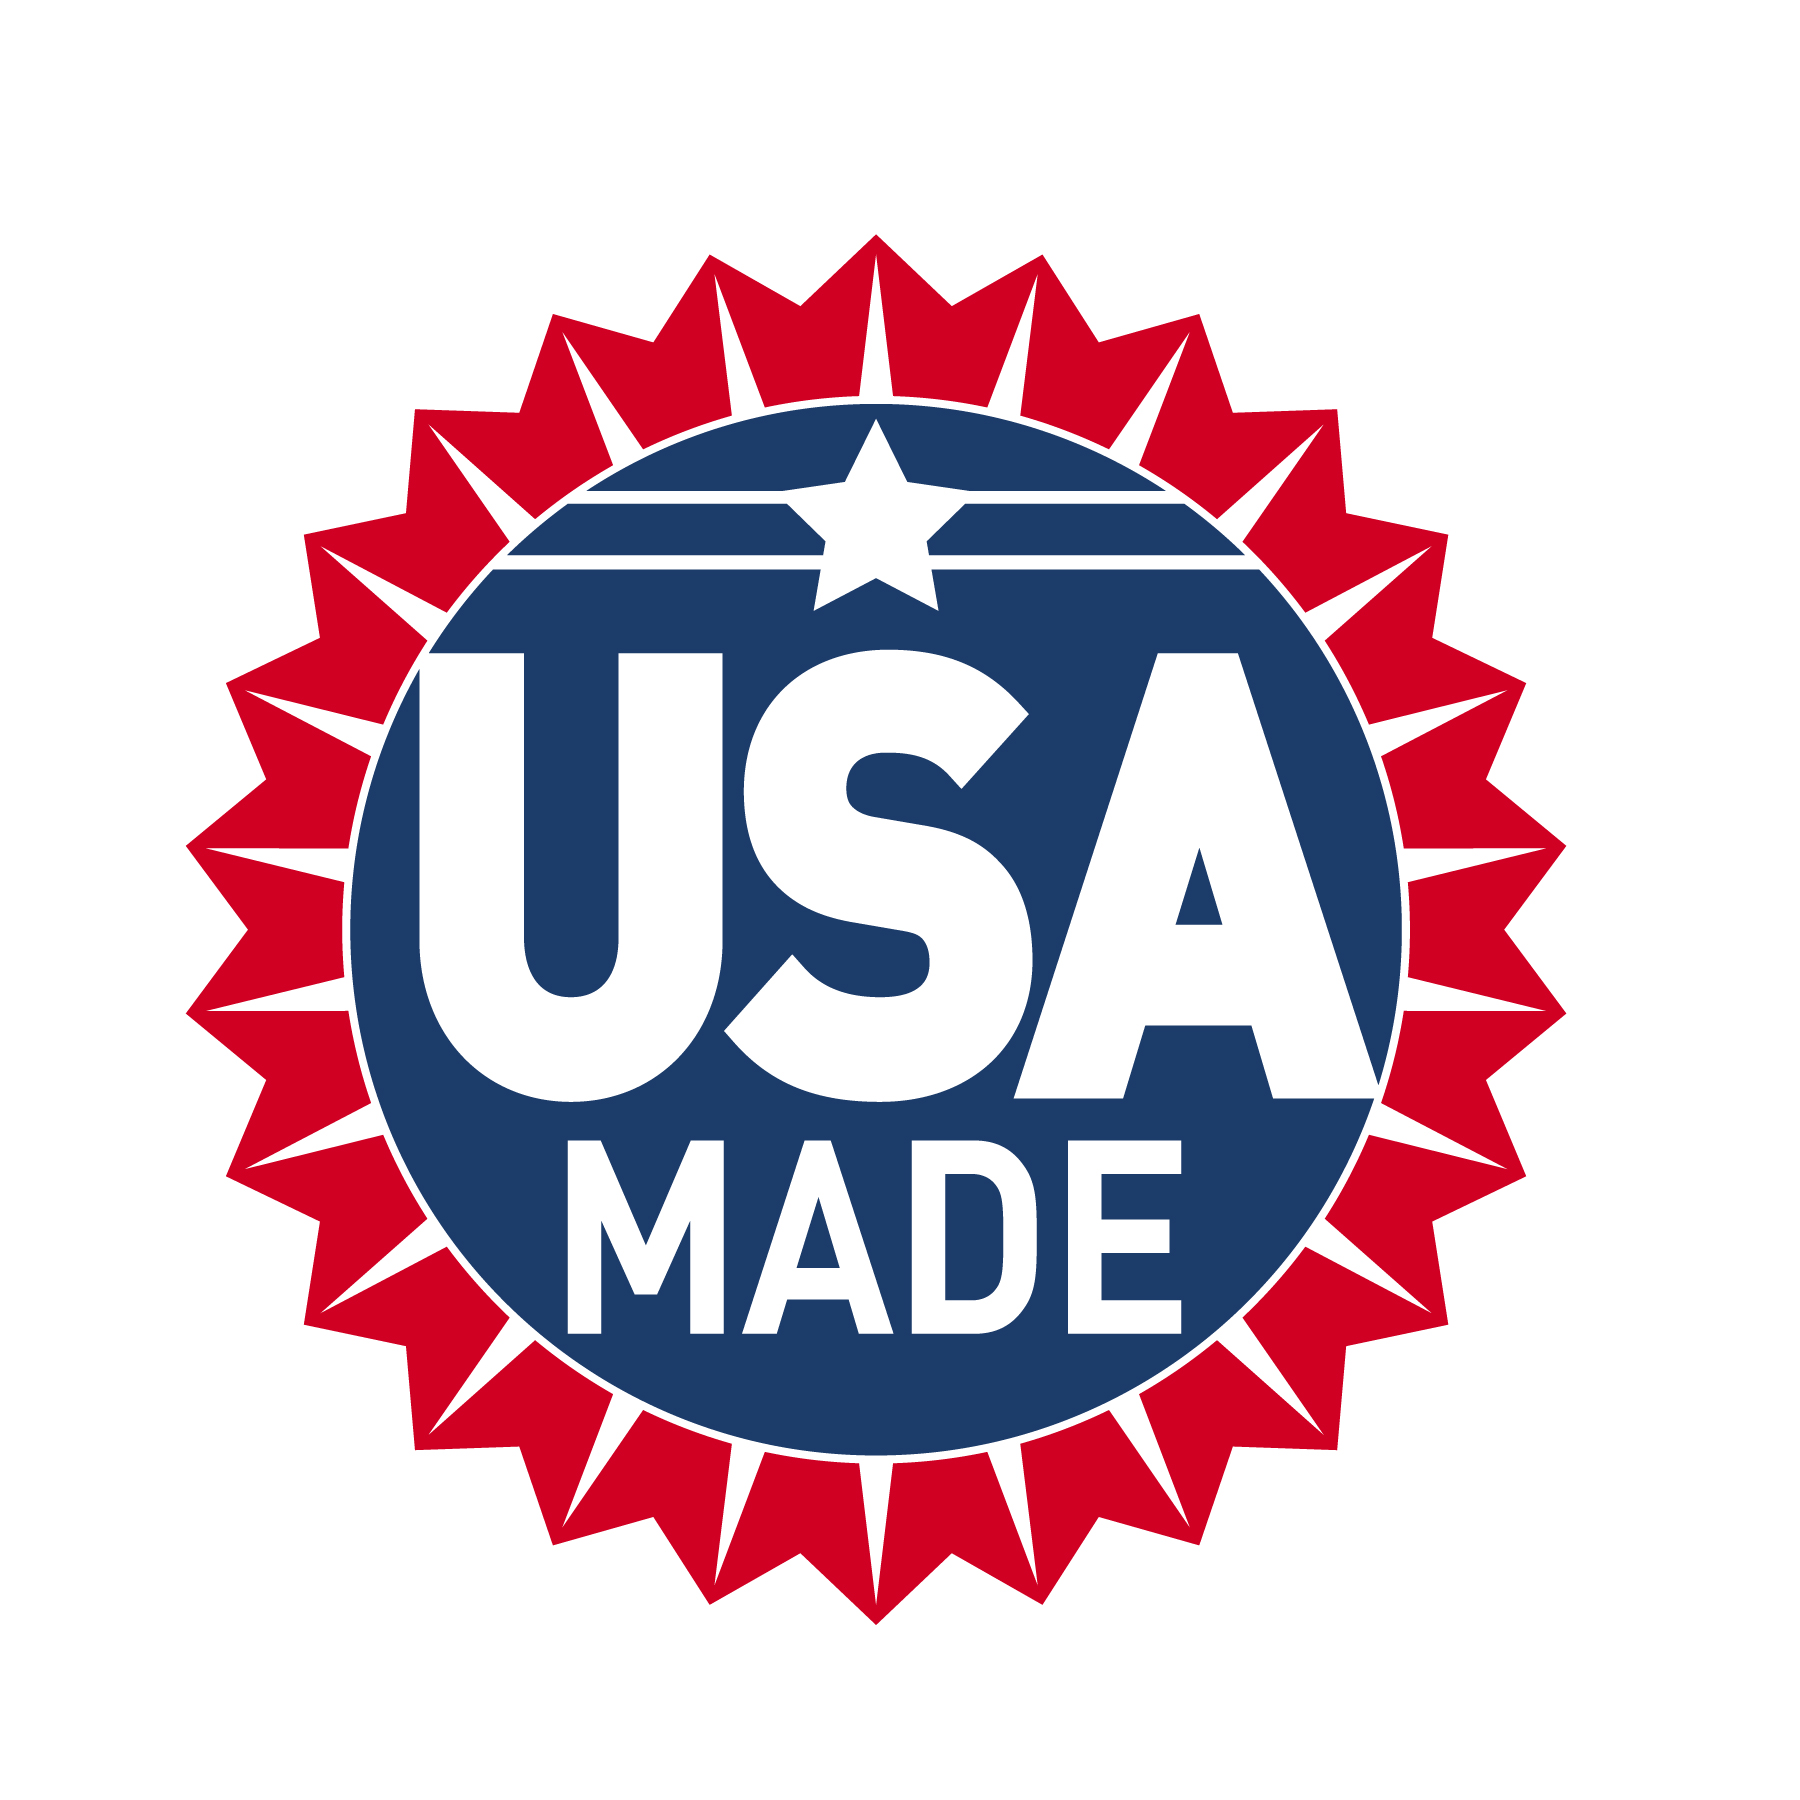 made usa logos rh logolynx com made in usa logo metal stamp made in usa logo metal stamp